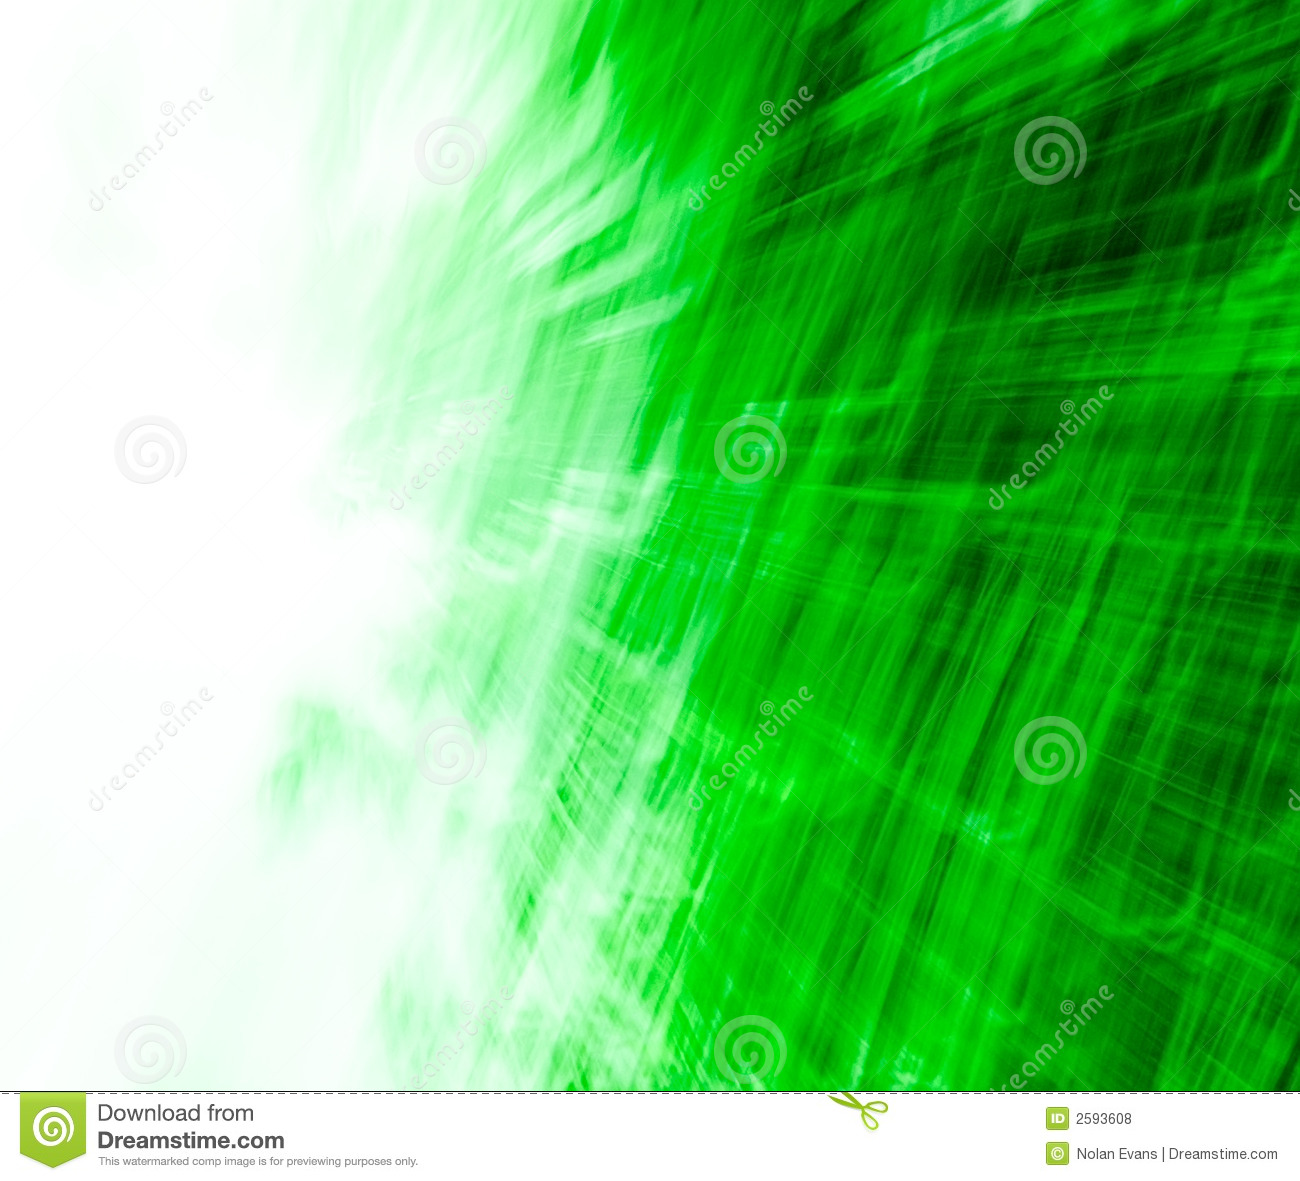 Movement Wallpaper Abstract 3d Green White Abstract Texture 0 Stock Photo Image 2593608